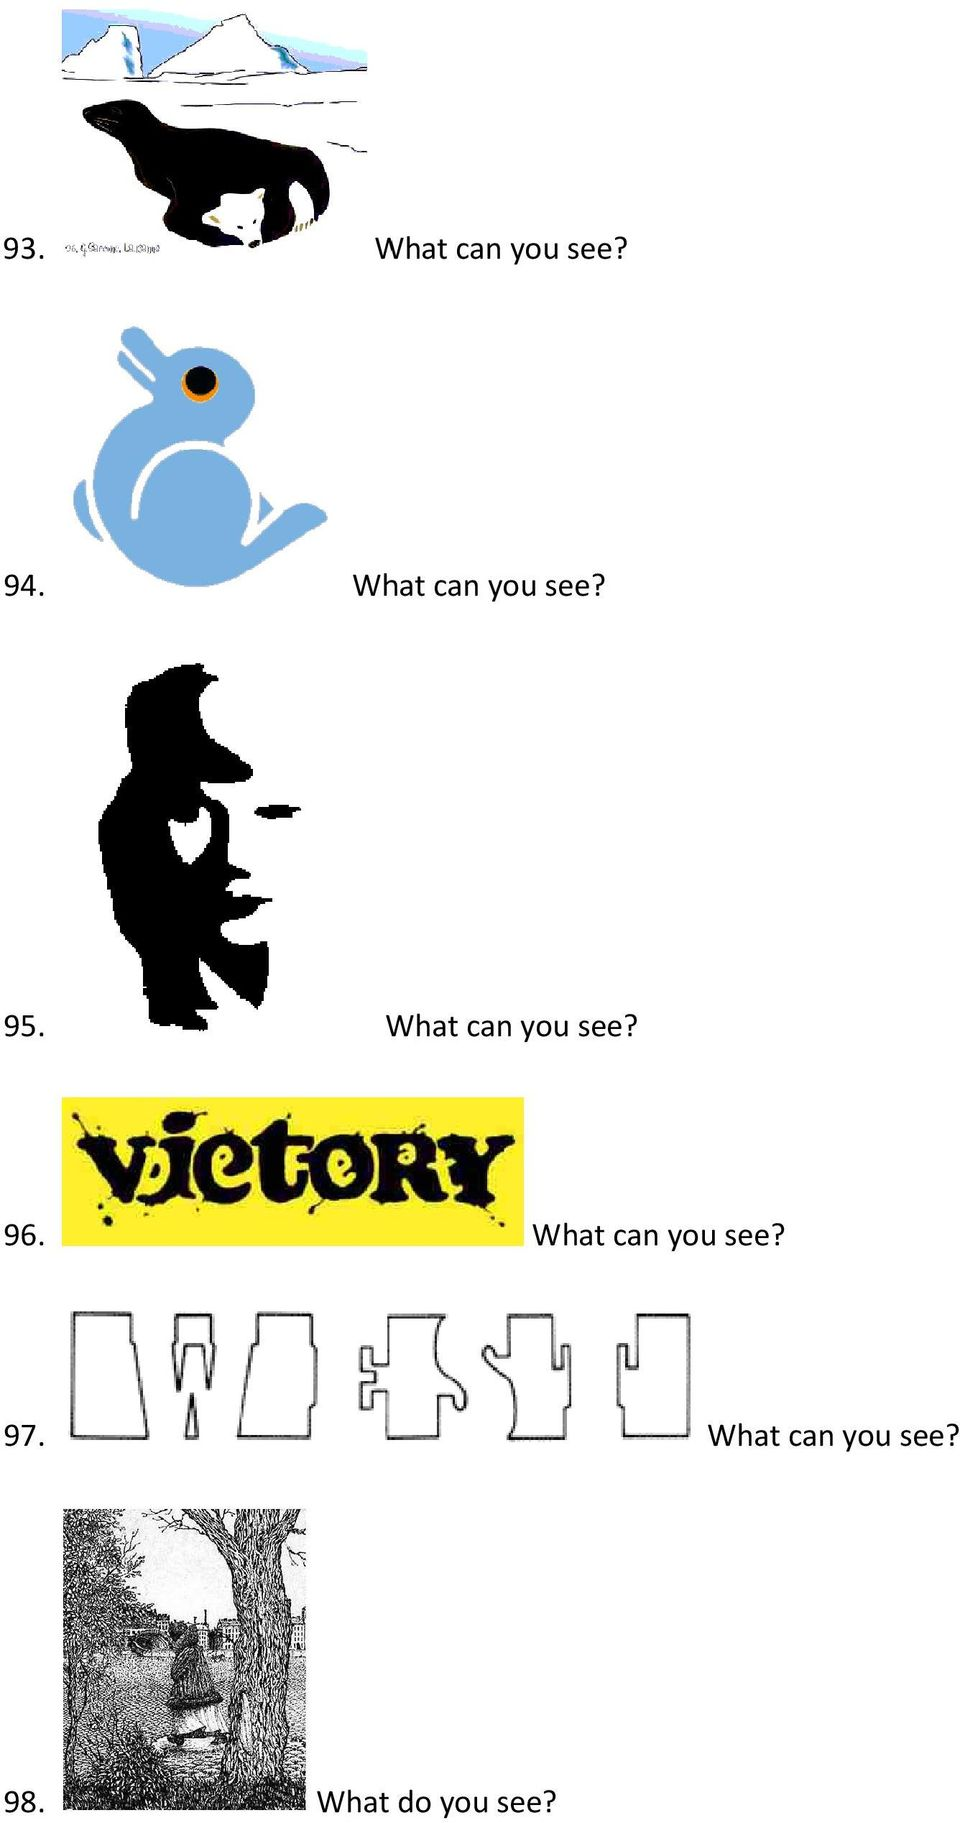 What can you see? 96.